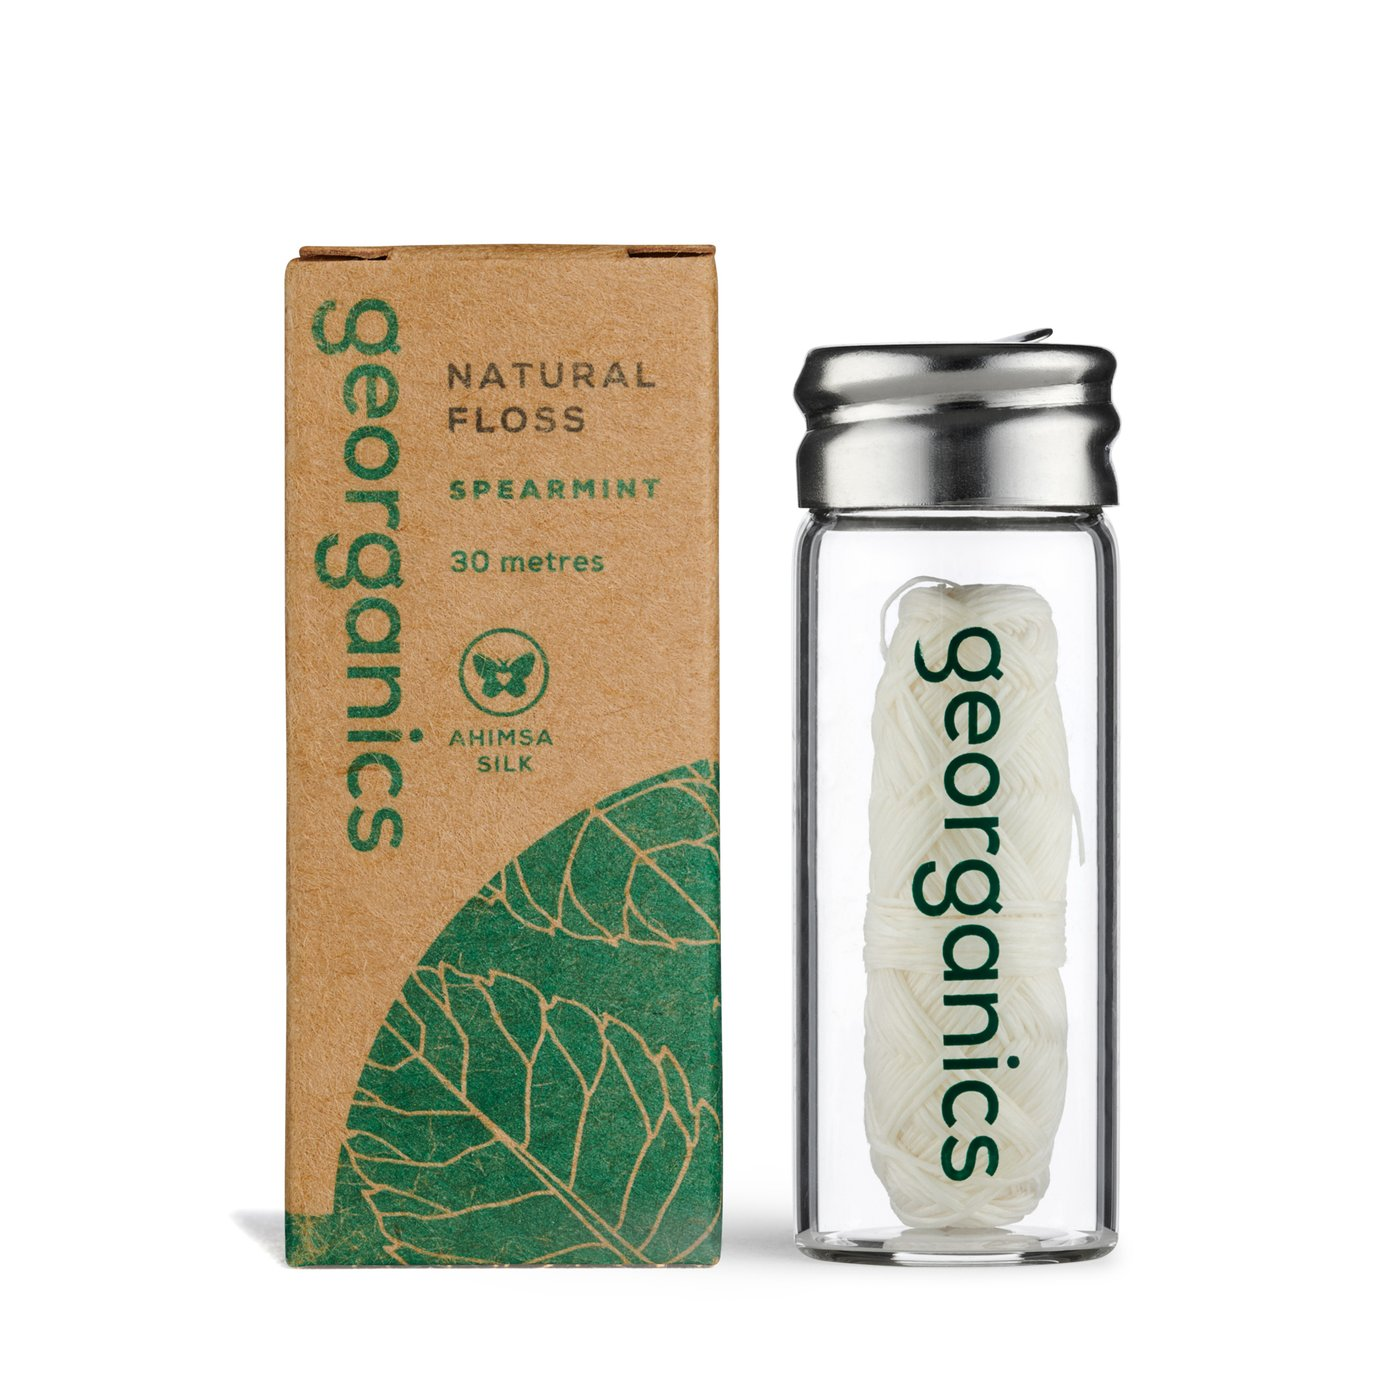 Natural Floss - Spearmint - natoorio